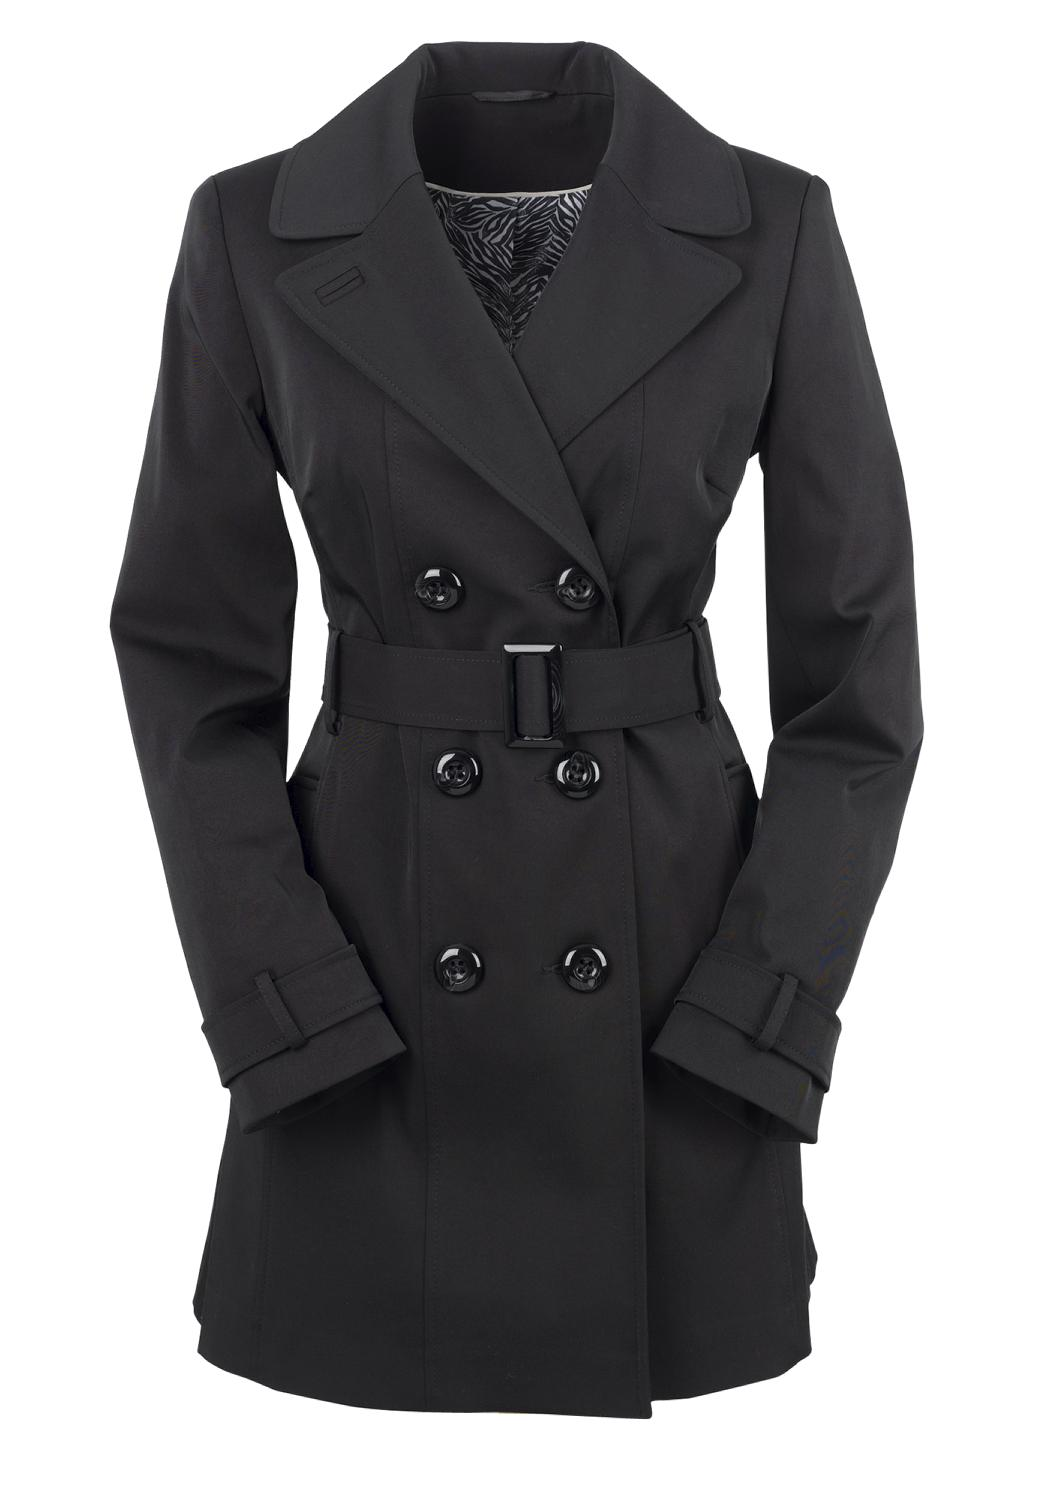 Too Many Coats?  A Life To Style